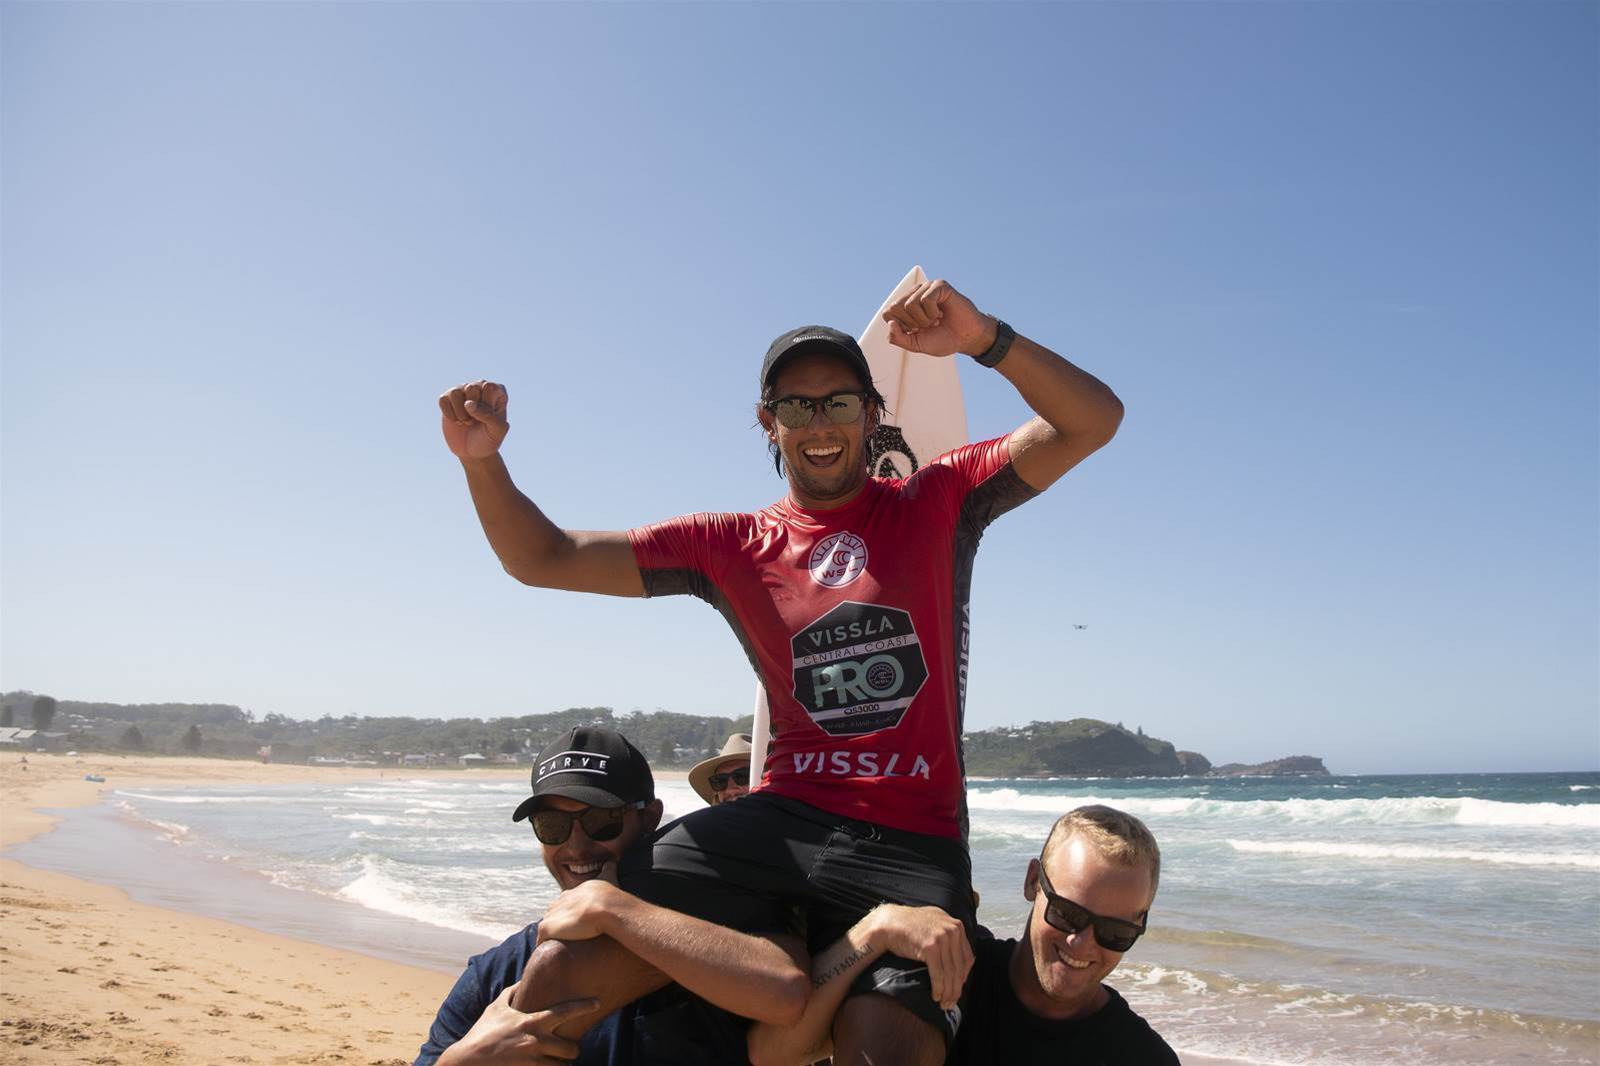 O'Leary and Banting Go 1 and 2 at Central Coast Pro